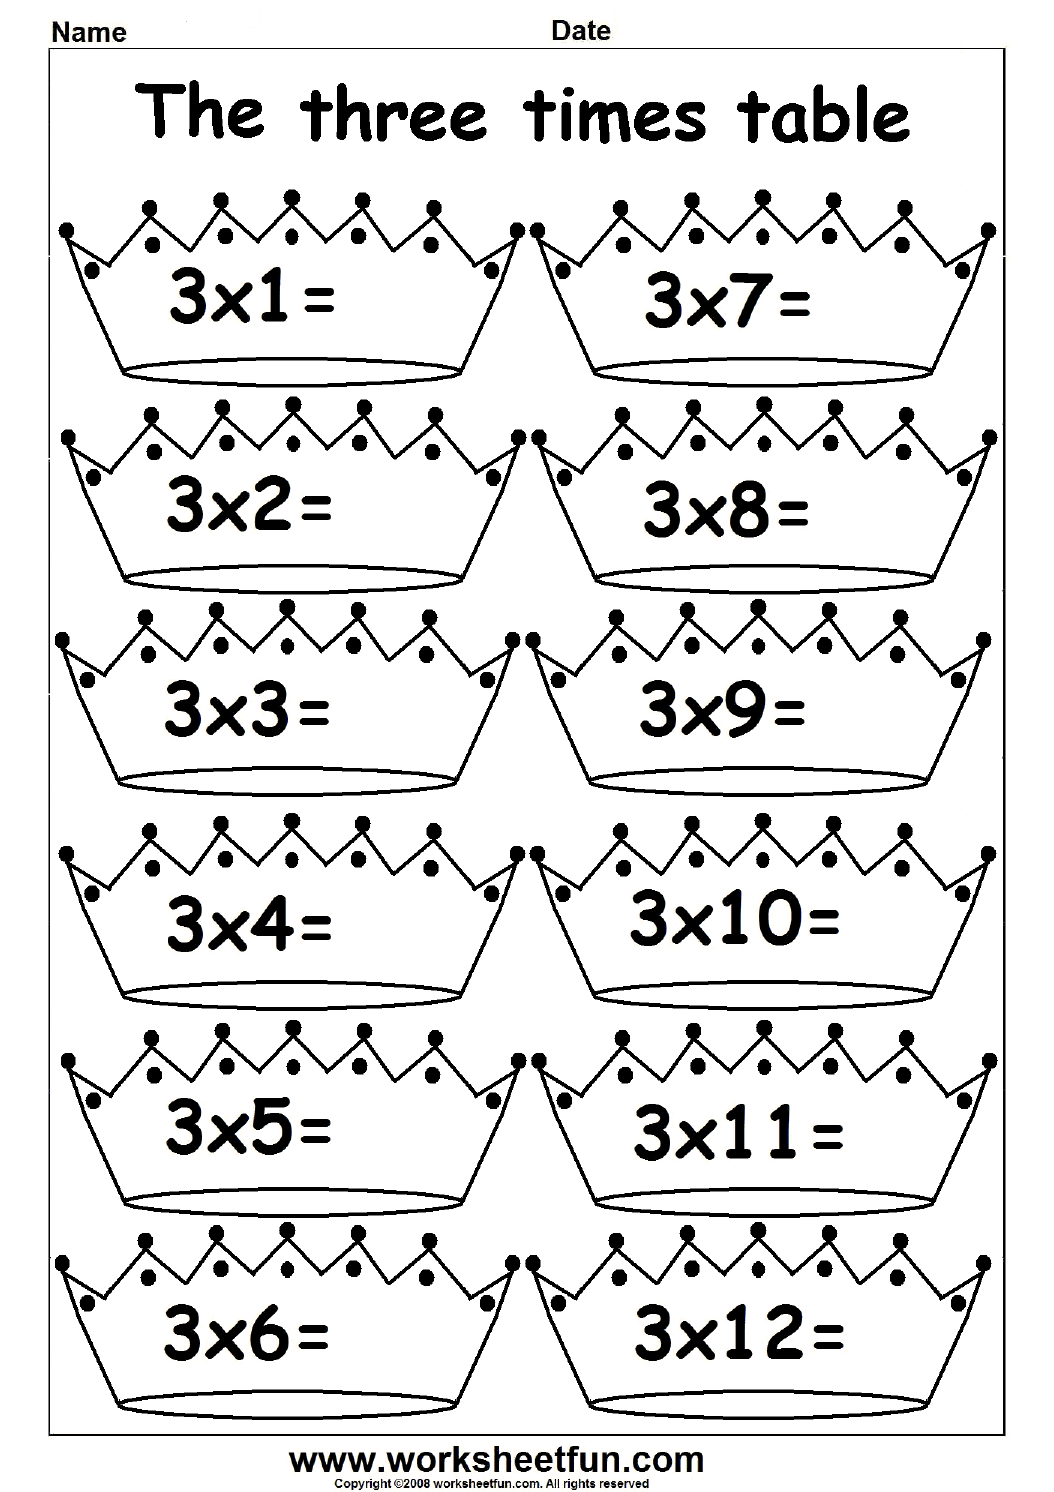 Multiplication Times Tables Worksheets 2 3 4 6 7 8 9 10 11 12 13 14 15 16 17 18